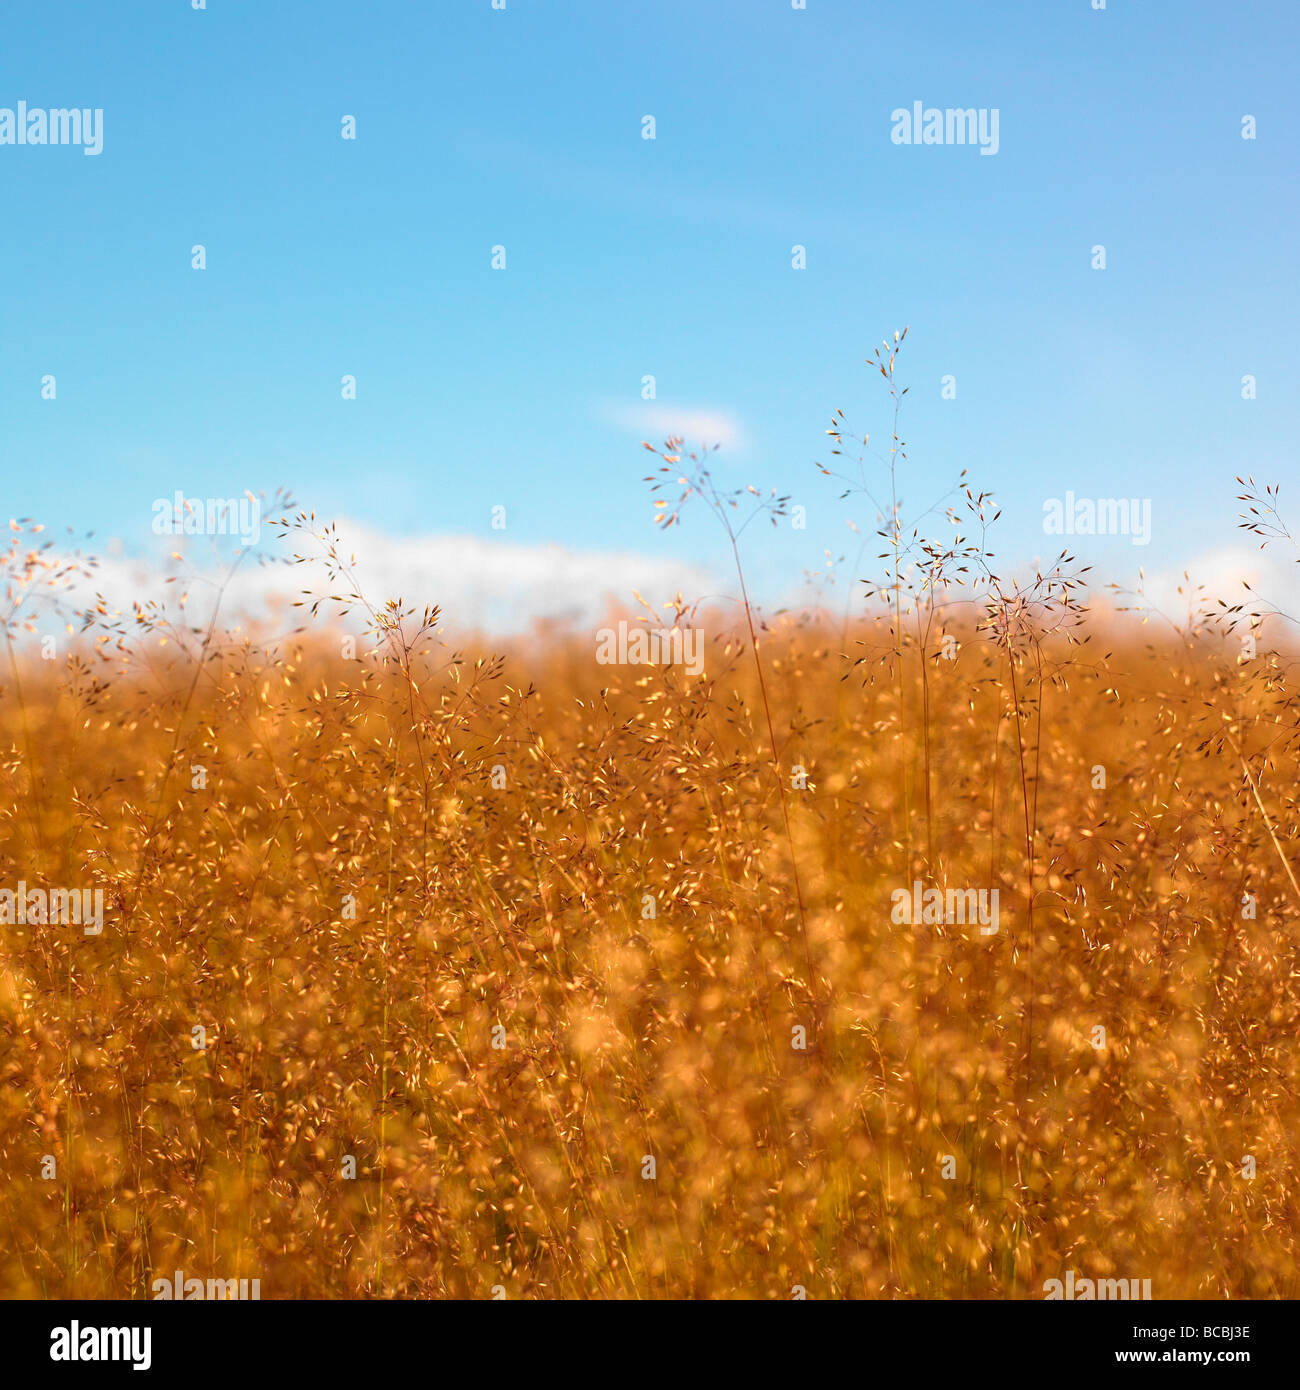 Grass seed heads with blue sky. - Stock Image